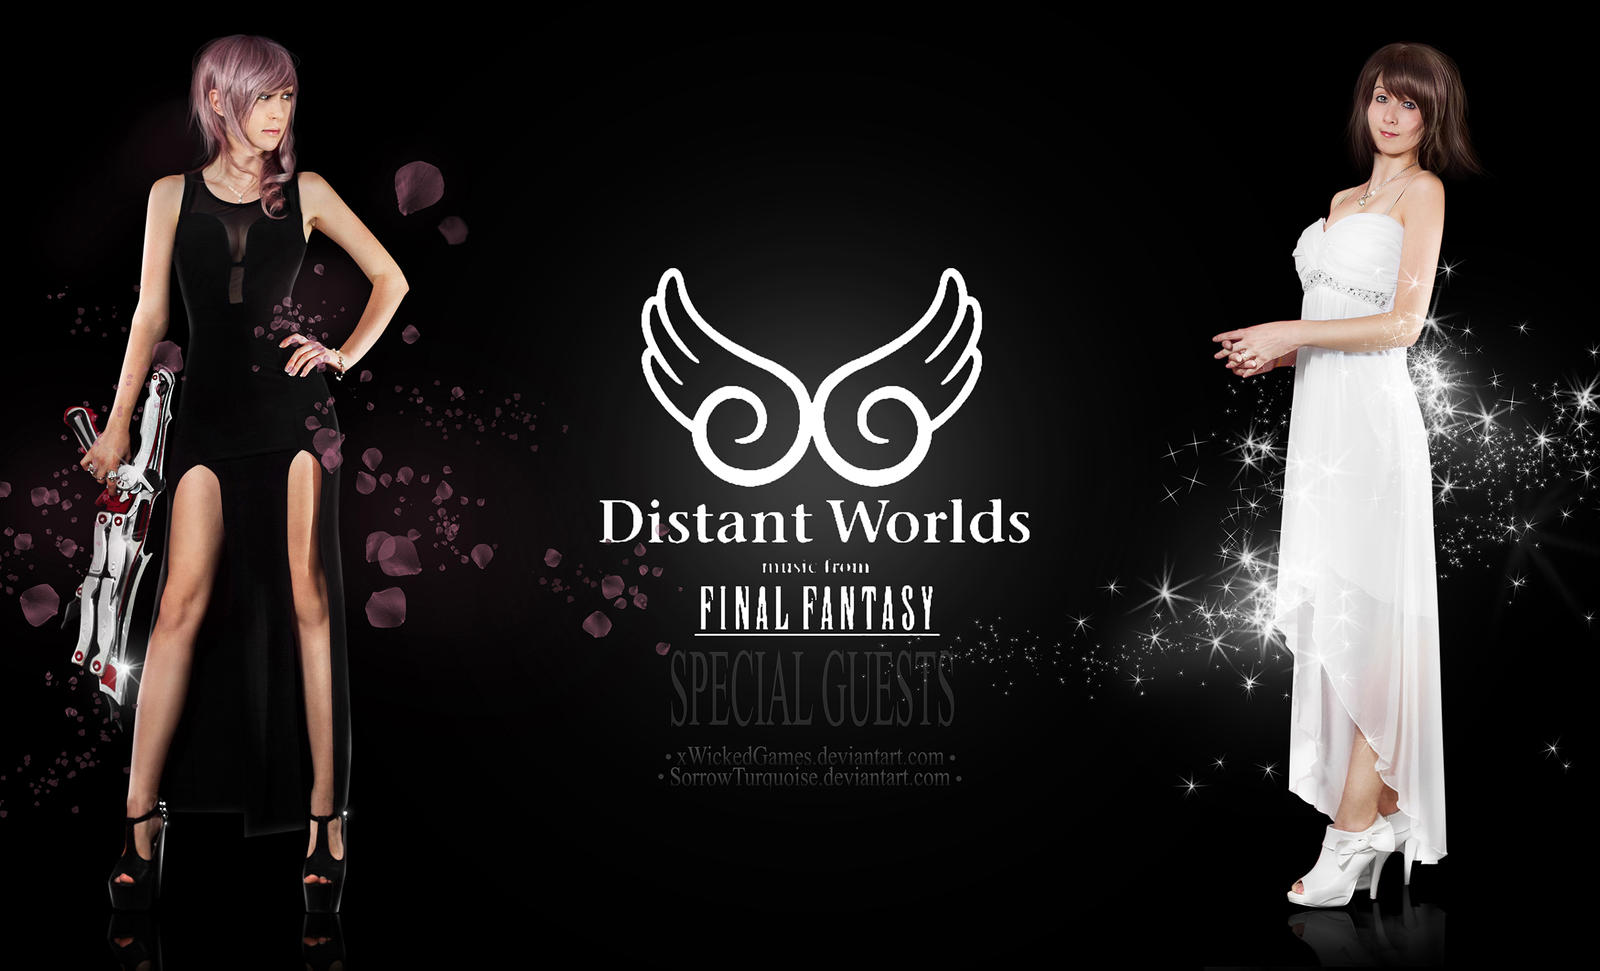 Distant Worlds Special Guests by xwickedgames